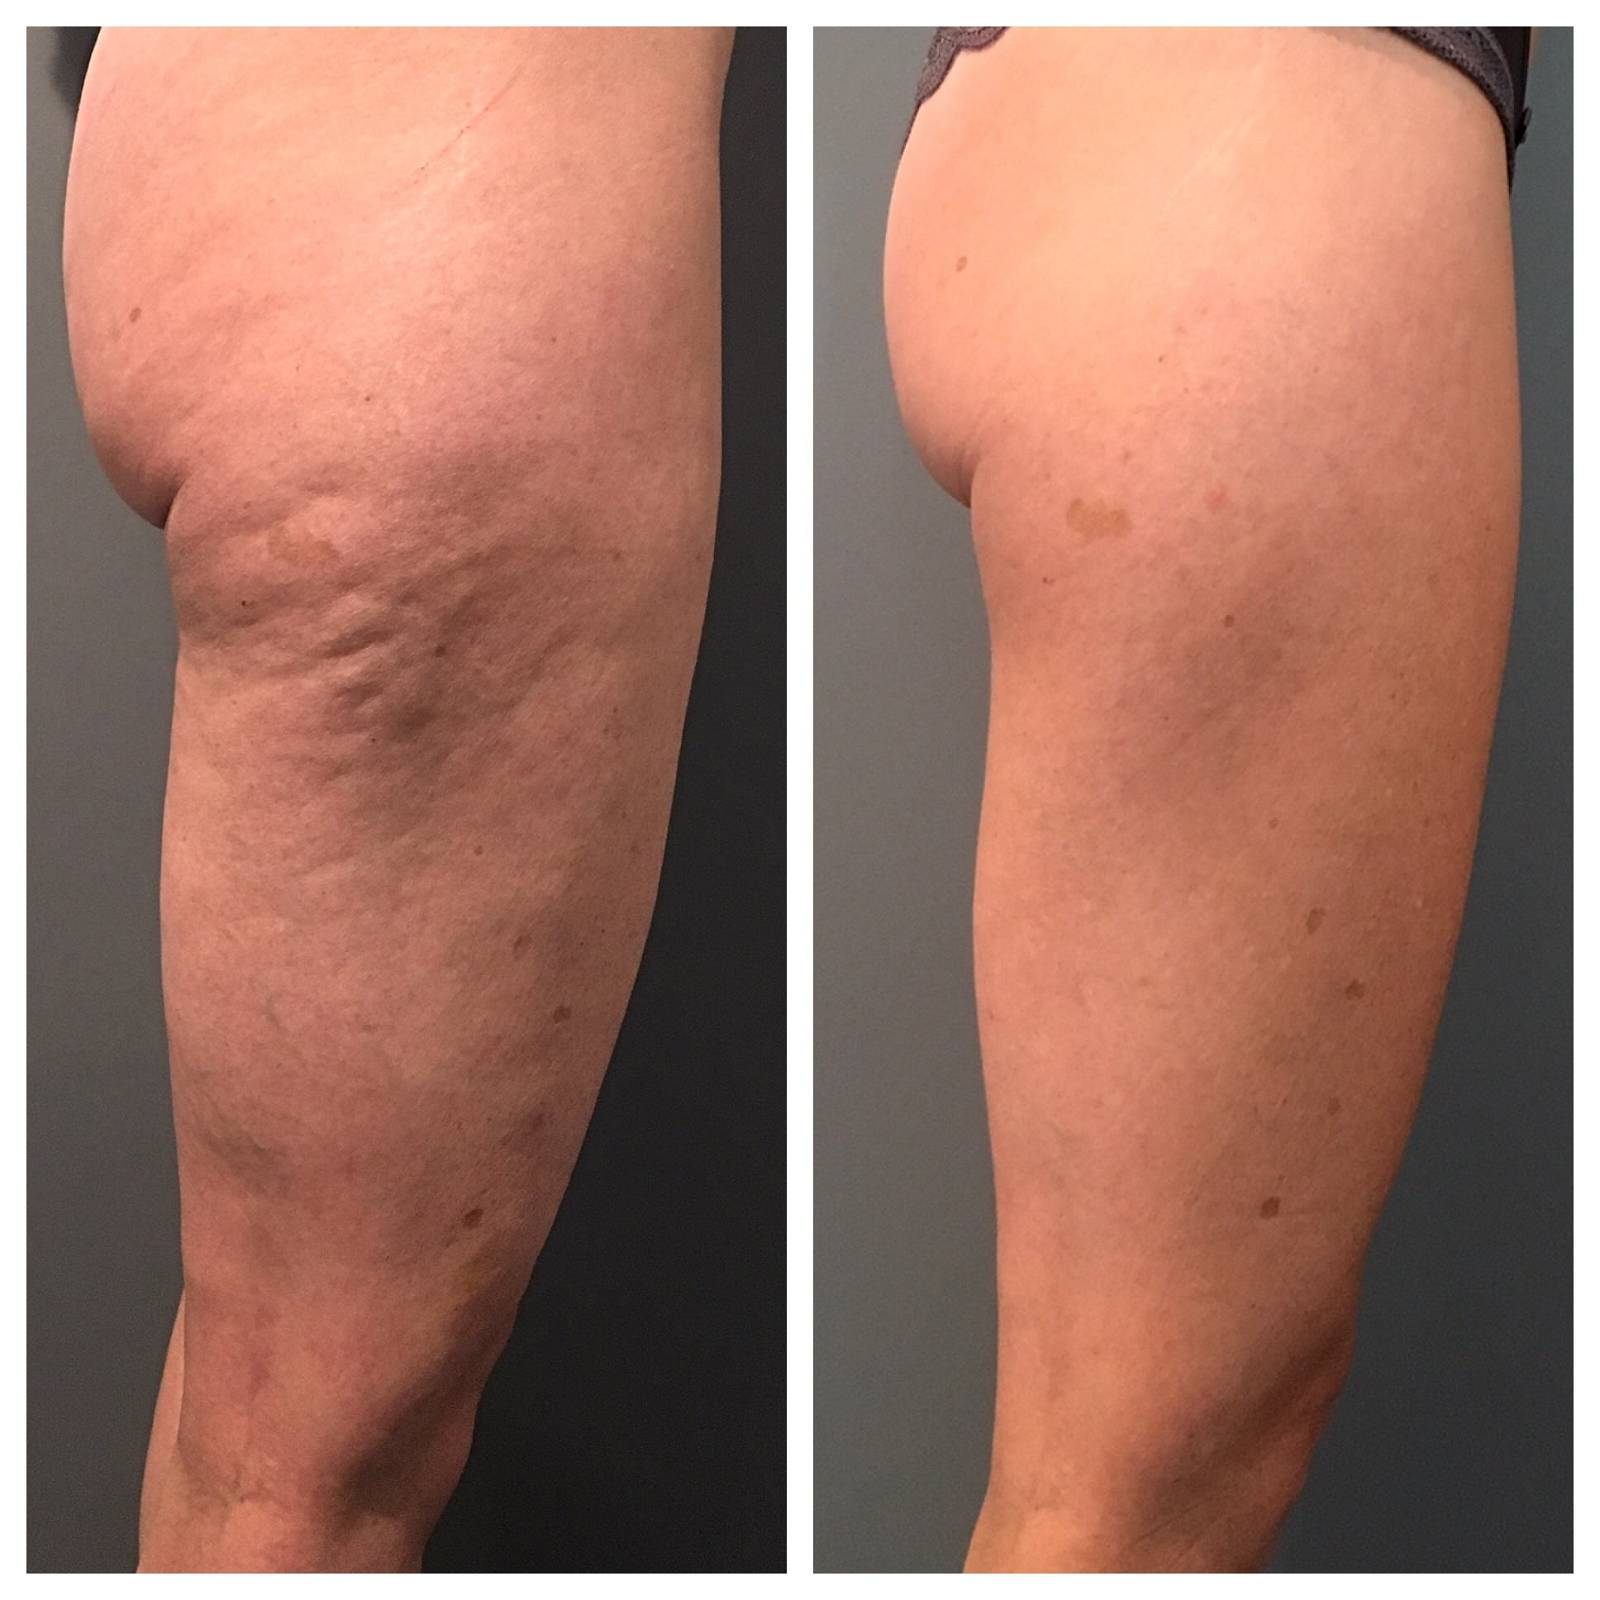 Before and after cellulite treatments